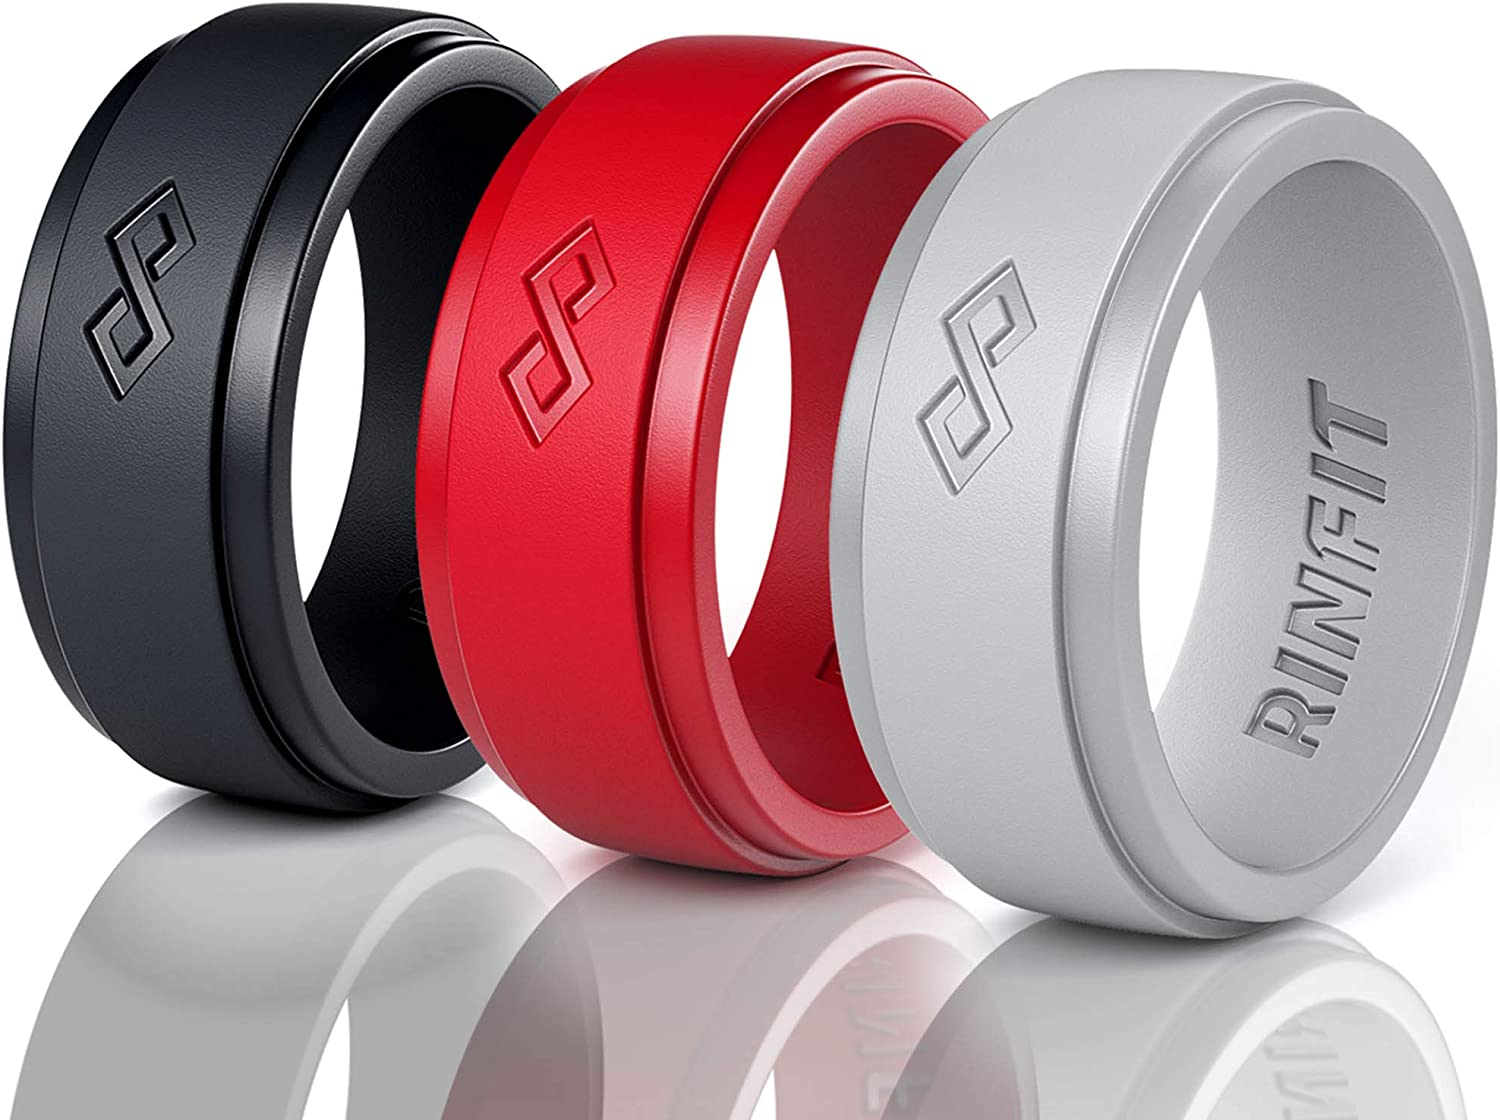 Silicone Wedding Ring for Men - 3 Rings Set by Rinfit - Designed, Safe, Soft Rubber, Silicone Men's Wedding Band. (12, Black, Red, Gray)